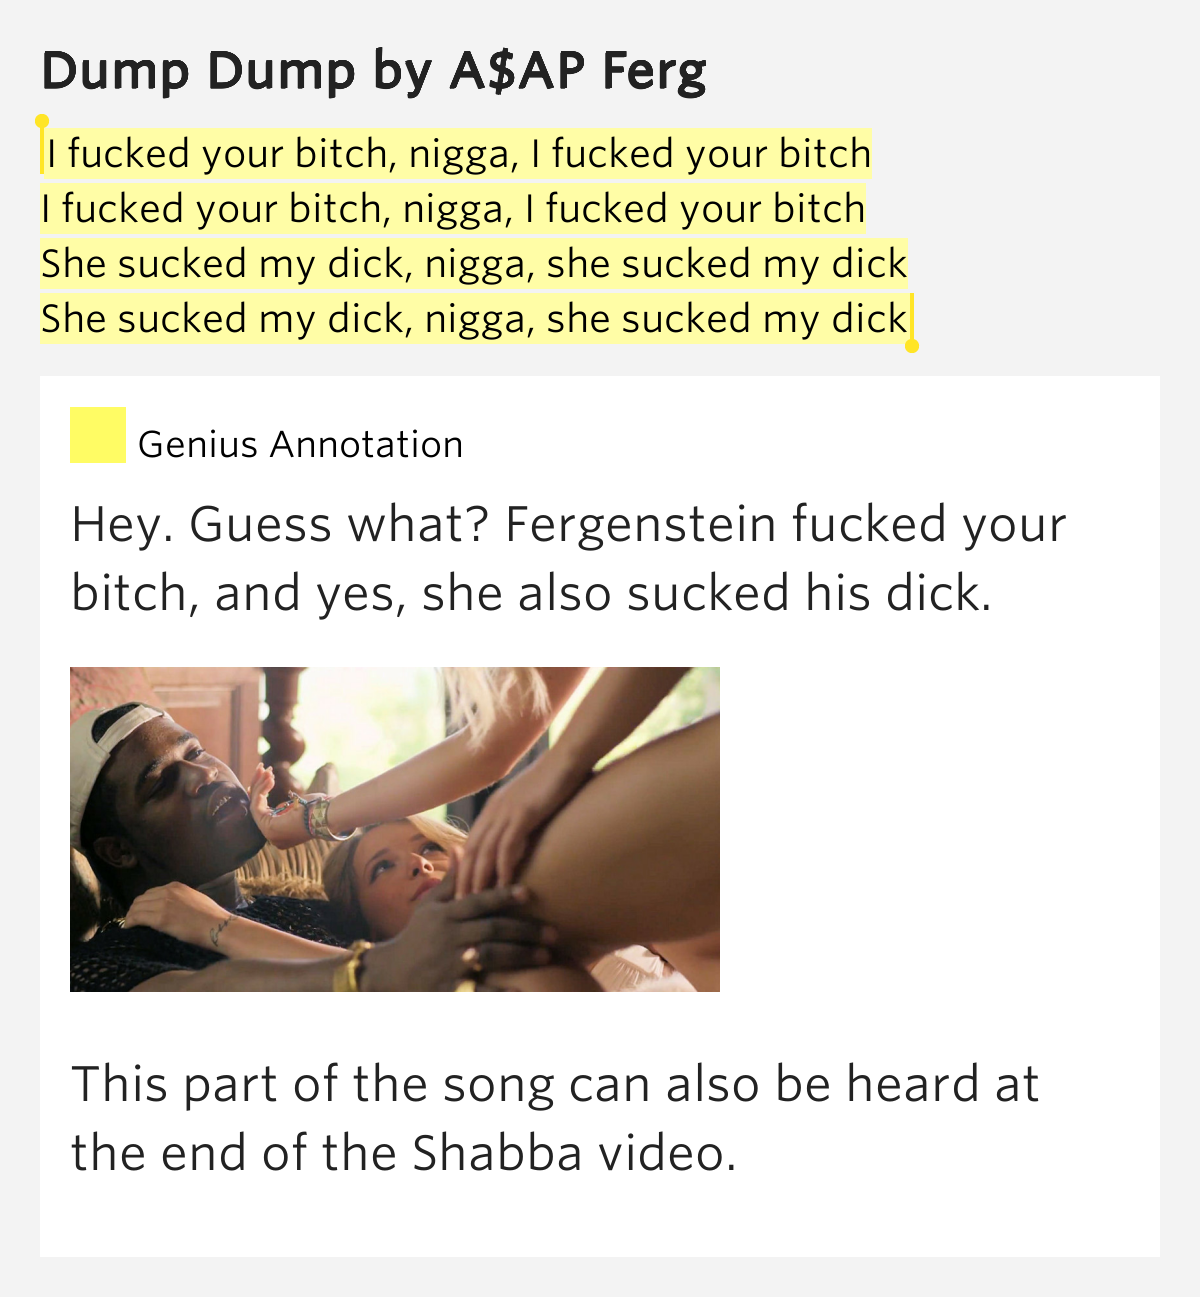 I fucked your bitch